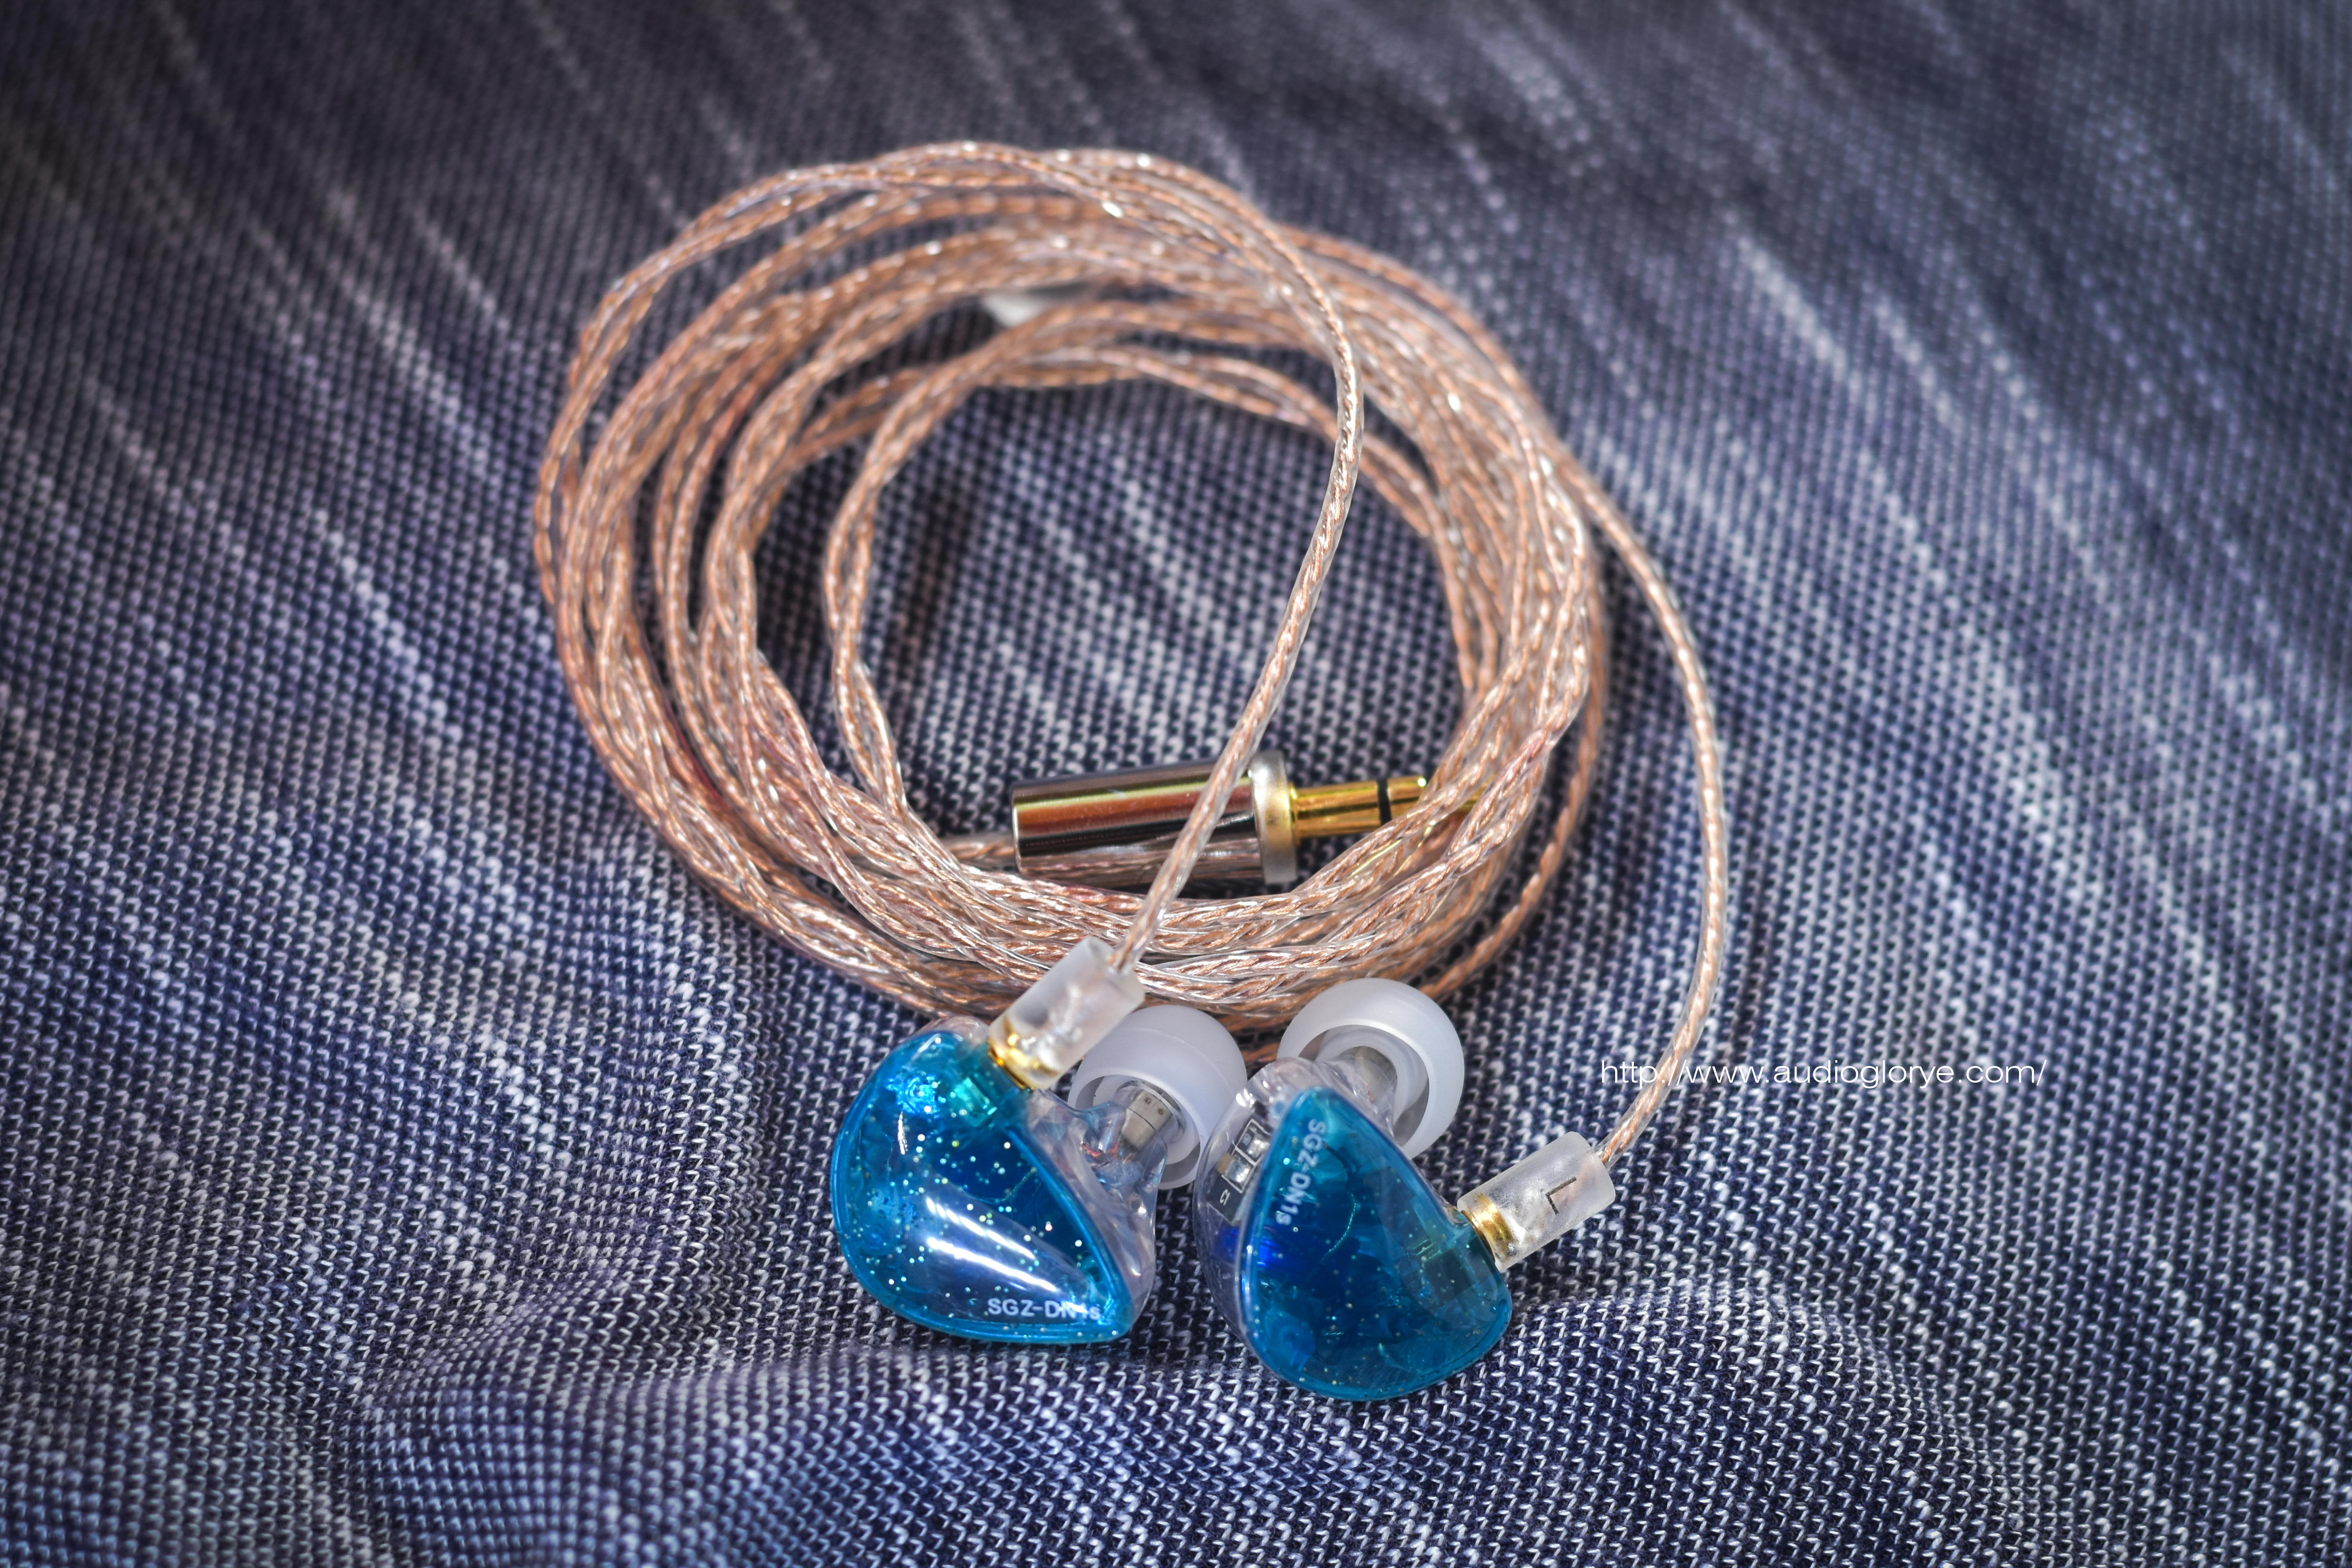 BGVP SGZ-DN1S with OE Audio 2Dual OFC Cable.